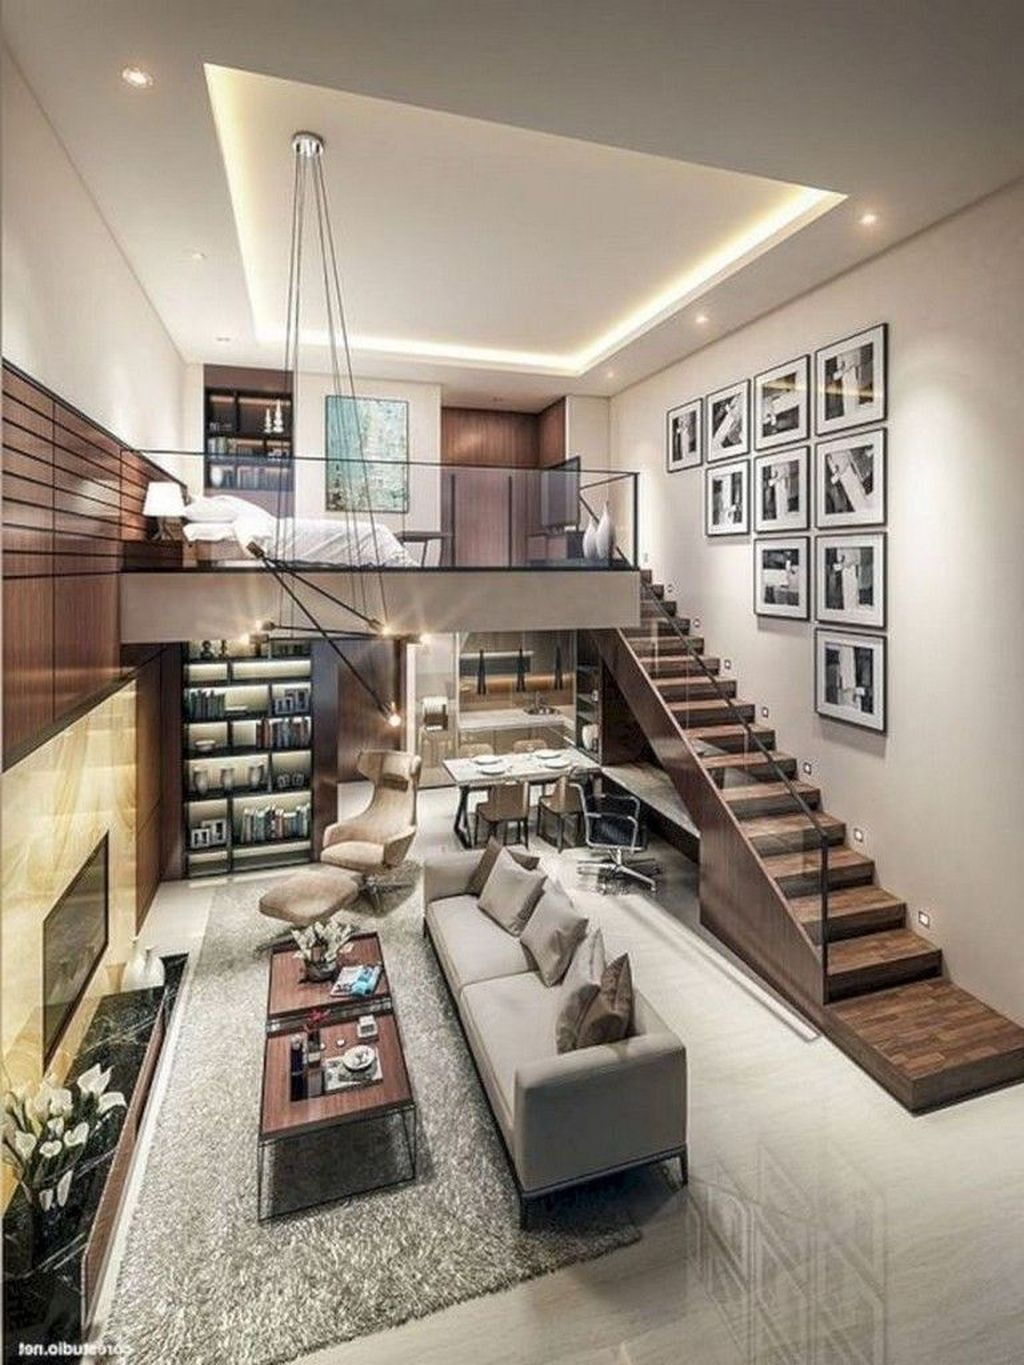 Marvelous Interior Design Ideas For Home That Looks Cool 20